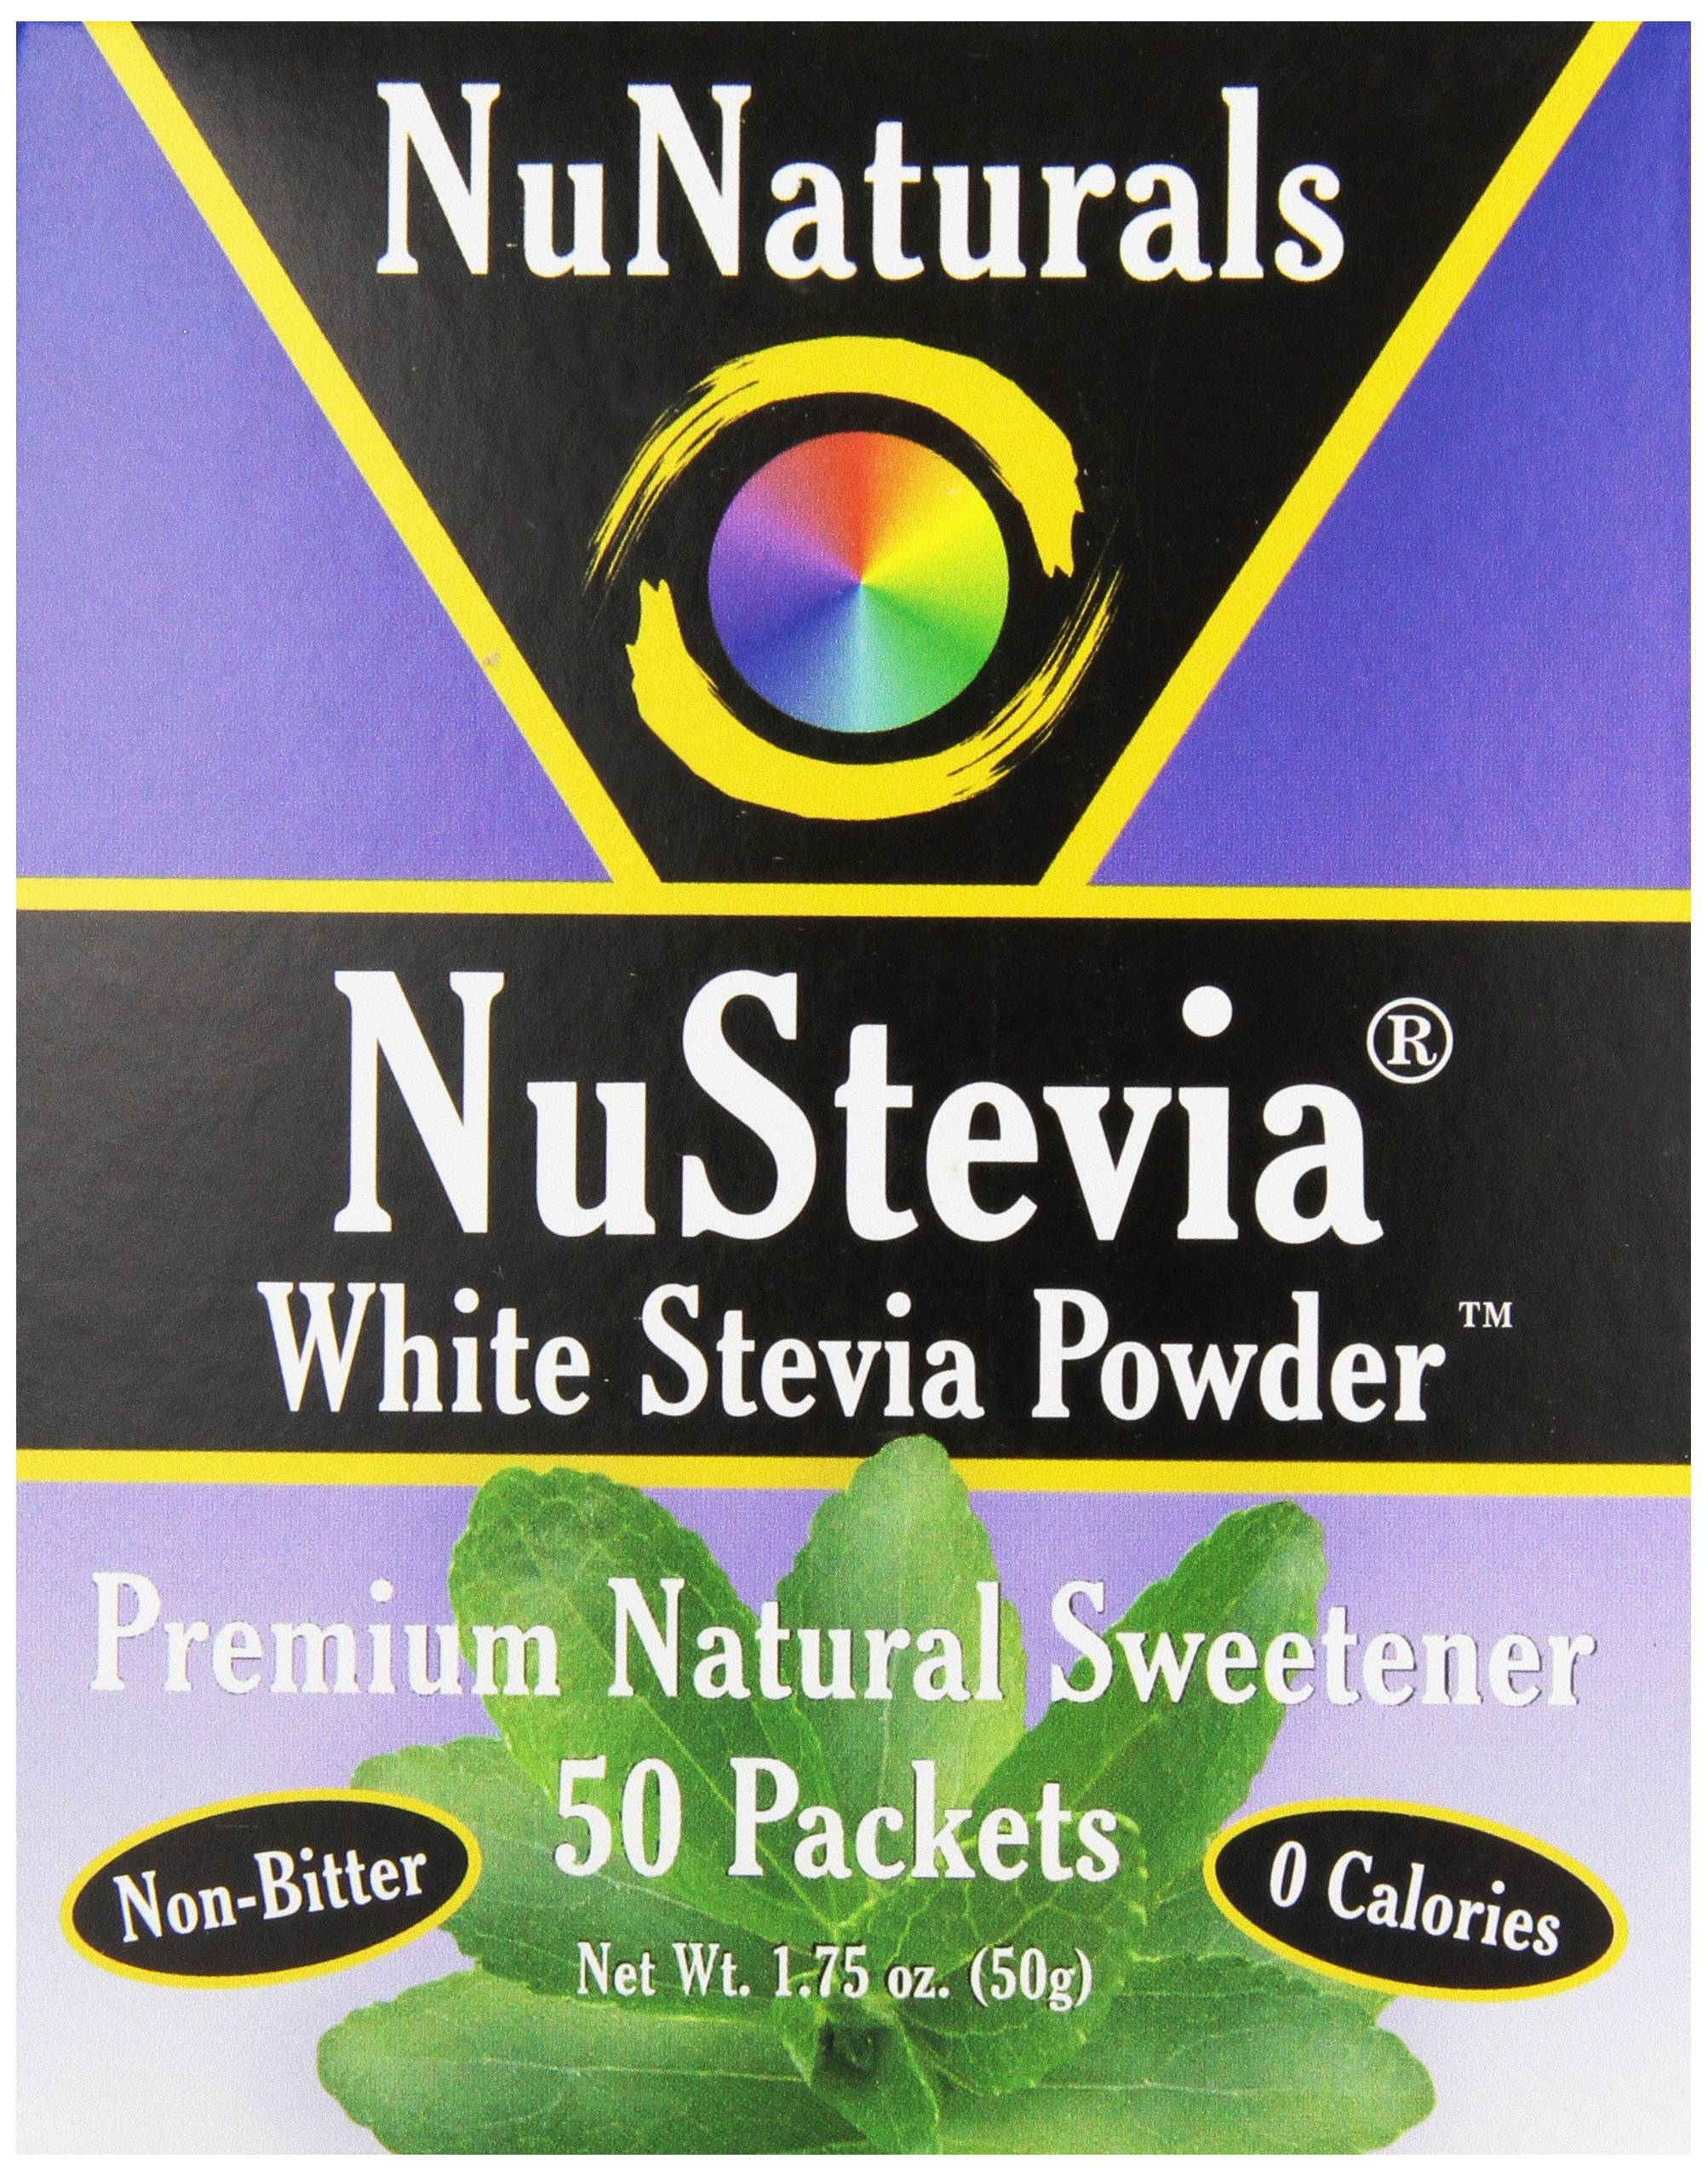 NuNaturals Nustevia White Stevia with Maltodextrin Packets, 50 count (Pack of 24)